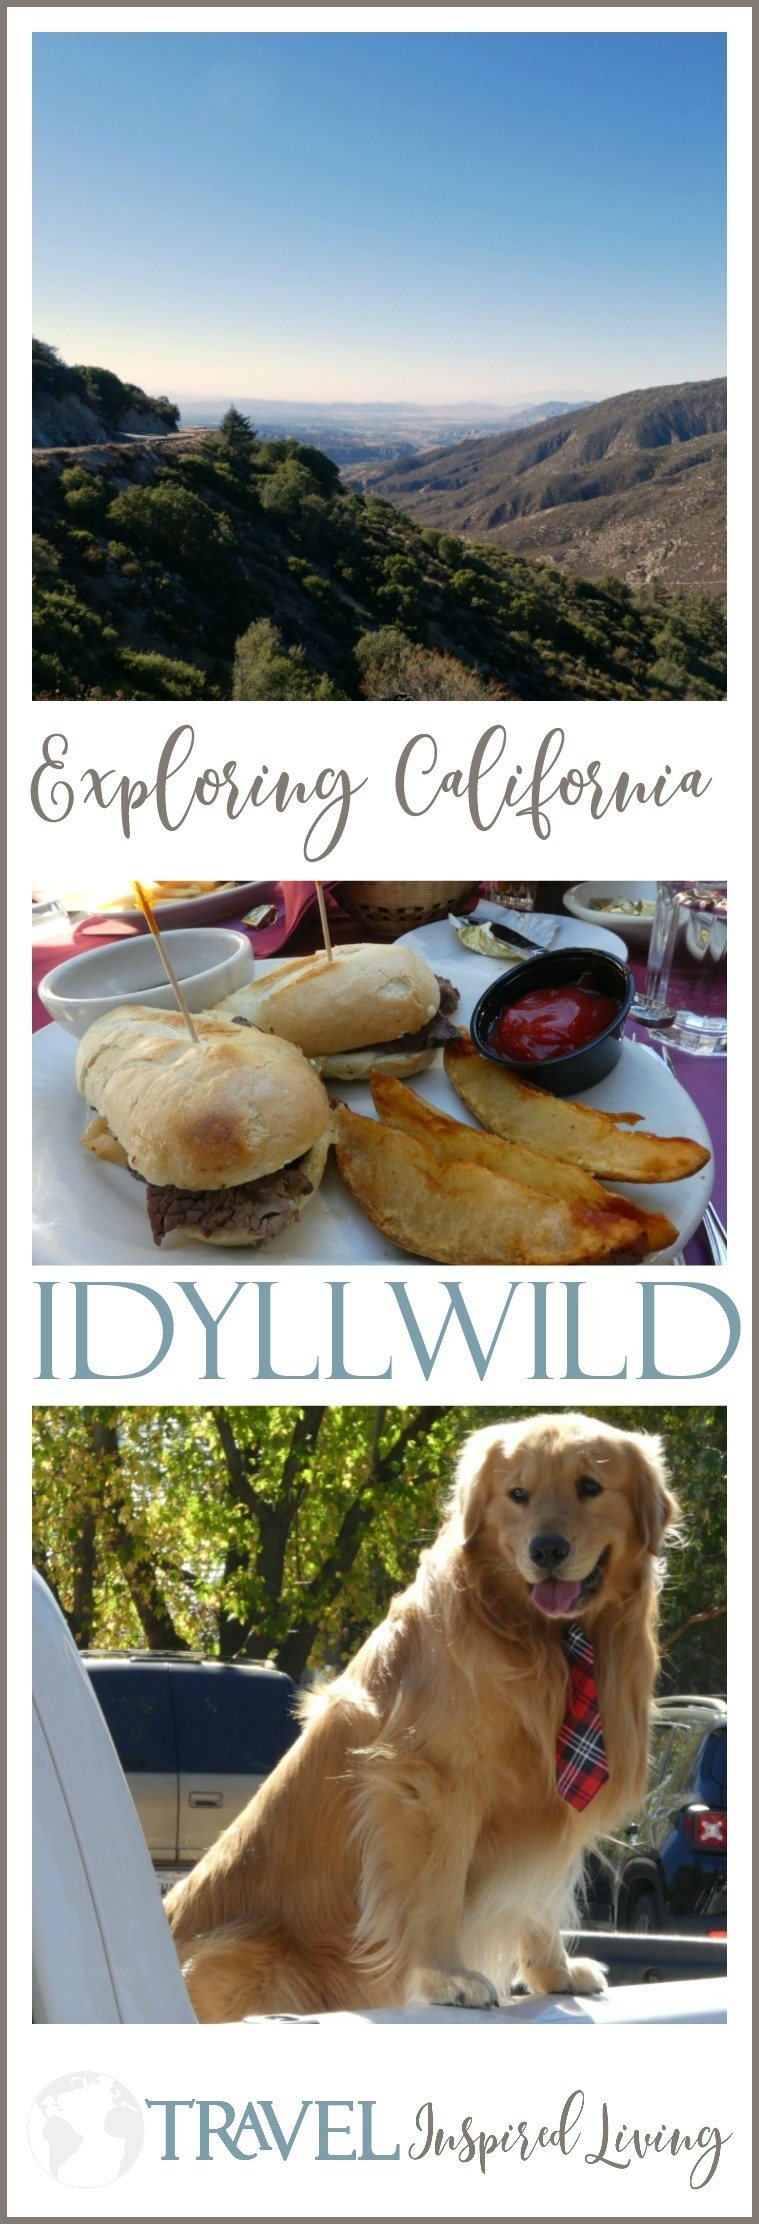 Spend a day in southern California exploring the shops, restaurants and trails of Idyllwild, California.